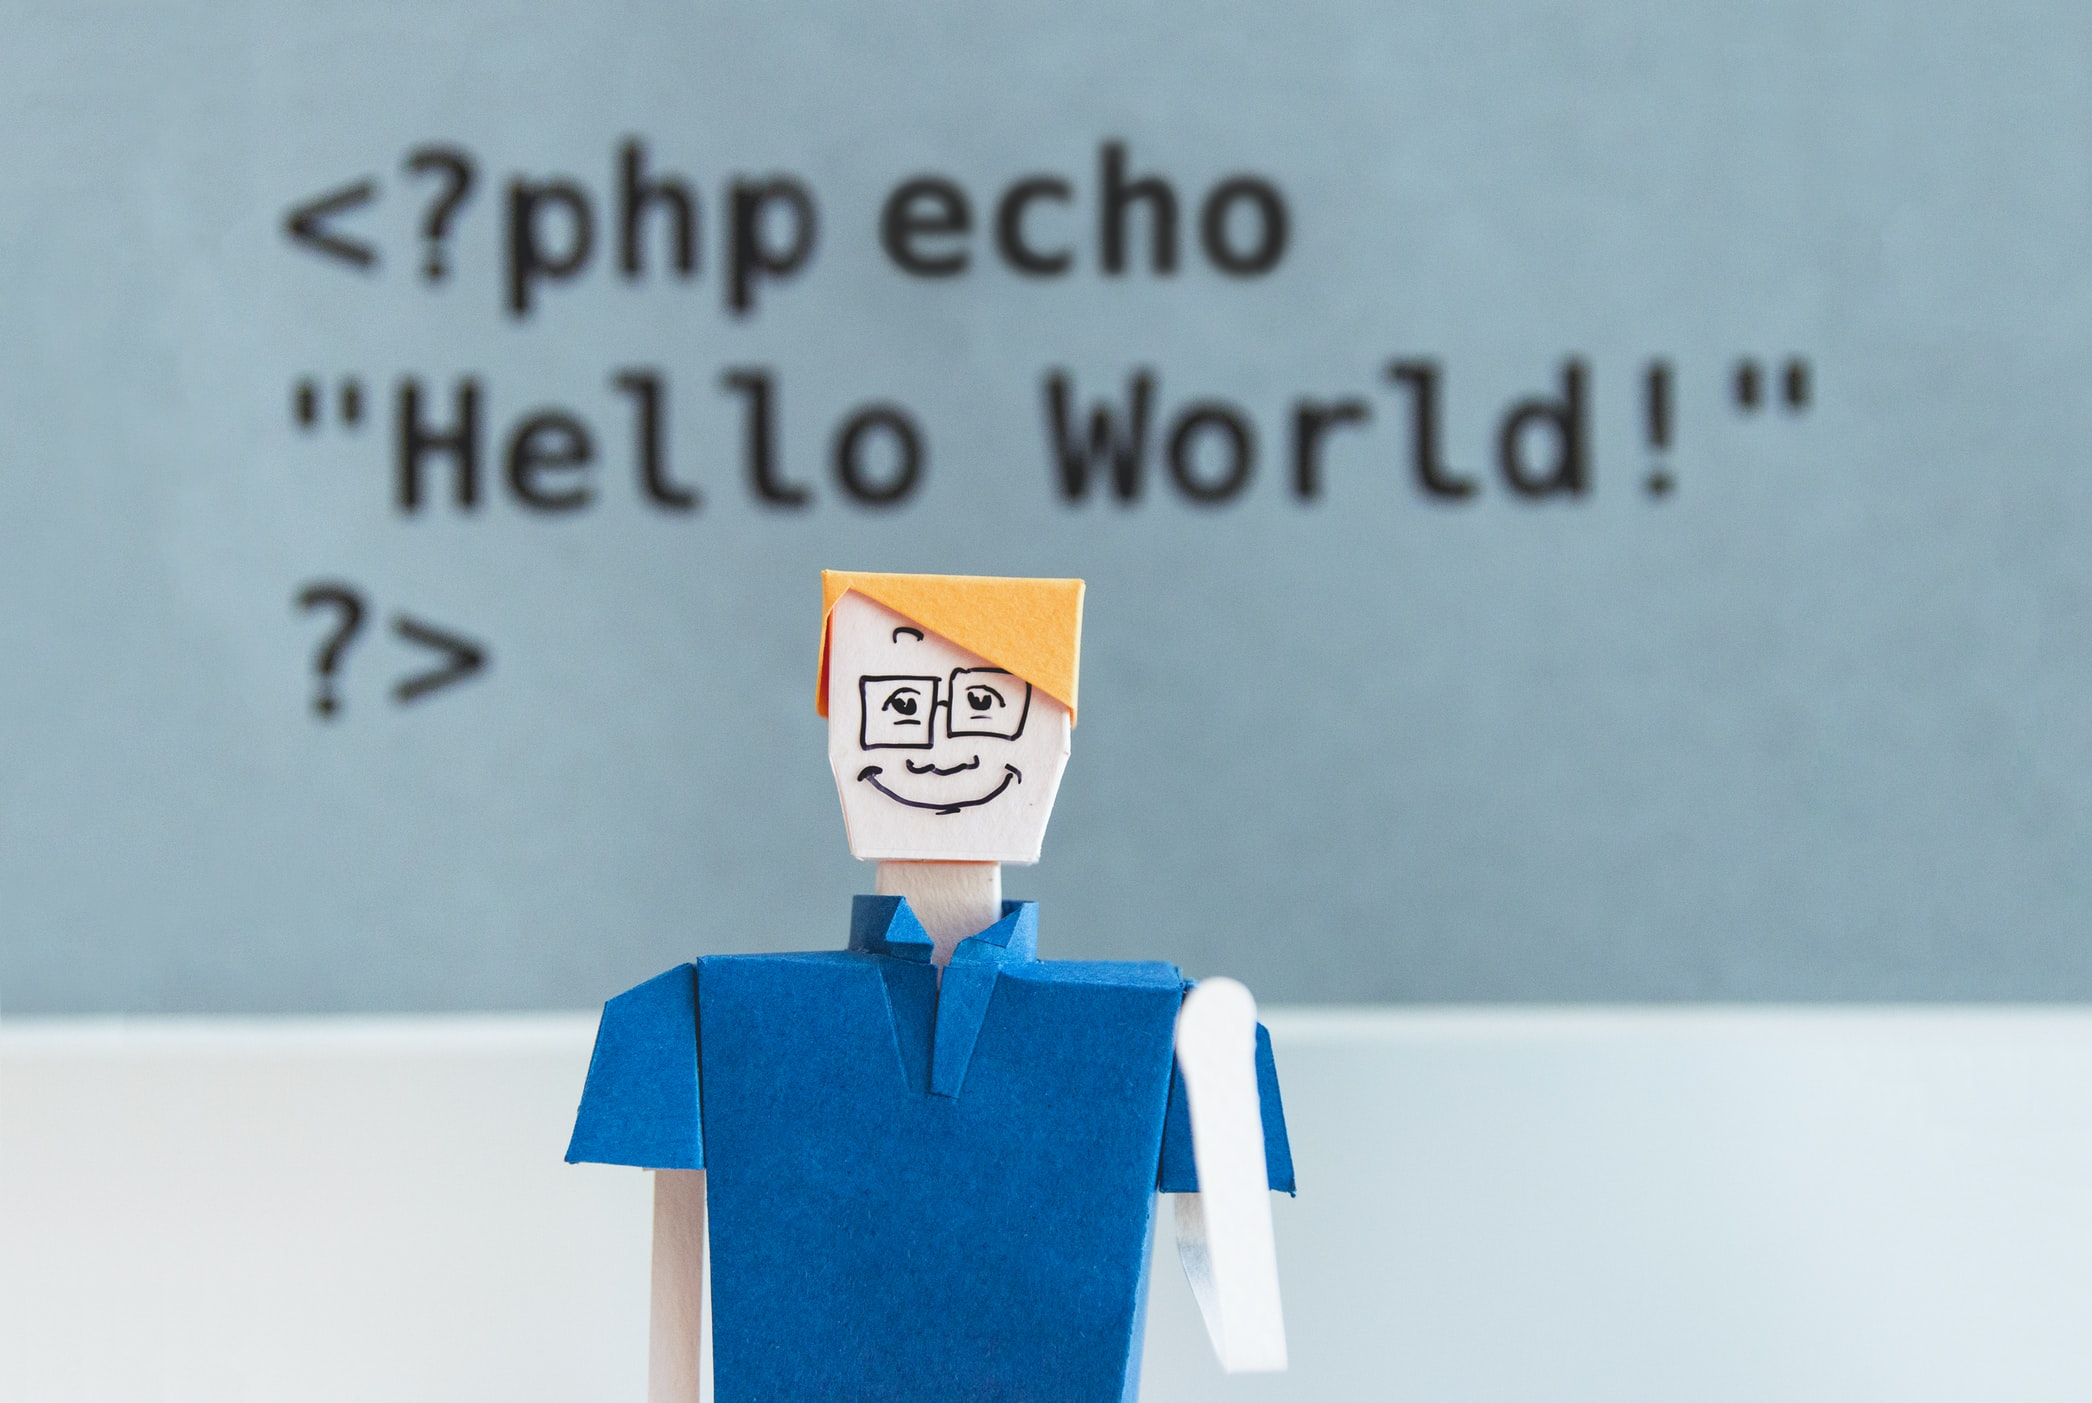 """Hello World!"" - Ph.: @kobuagency"